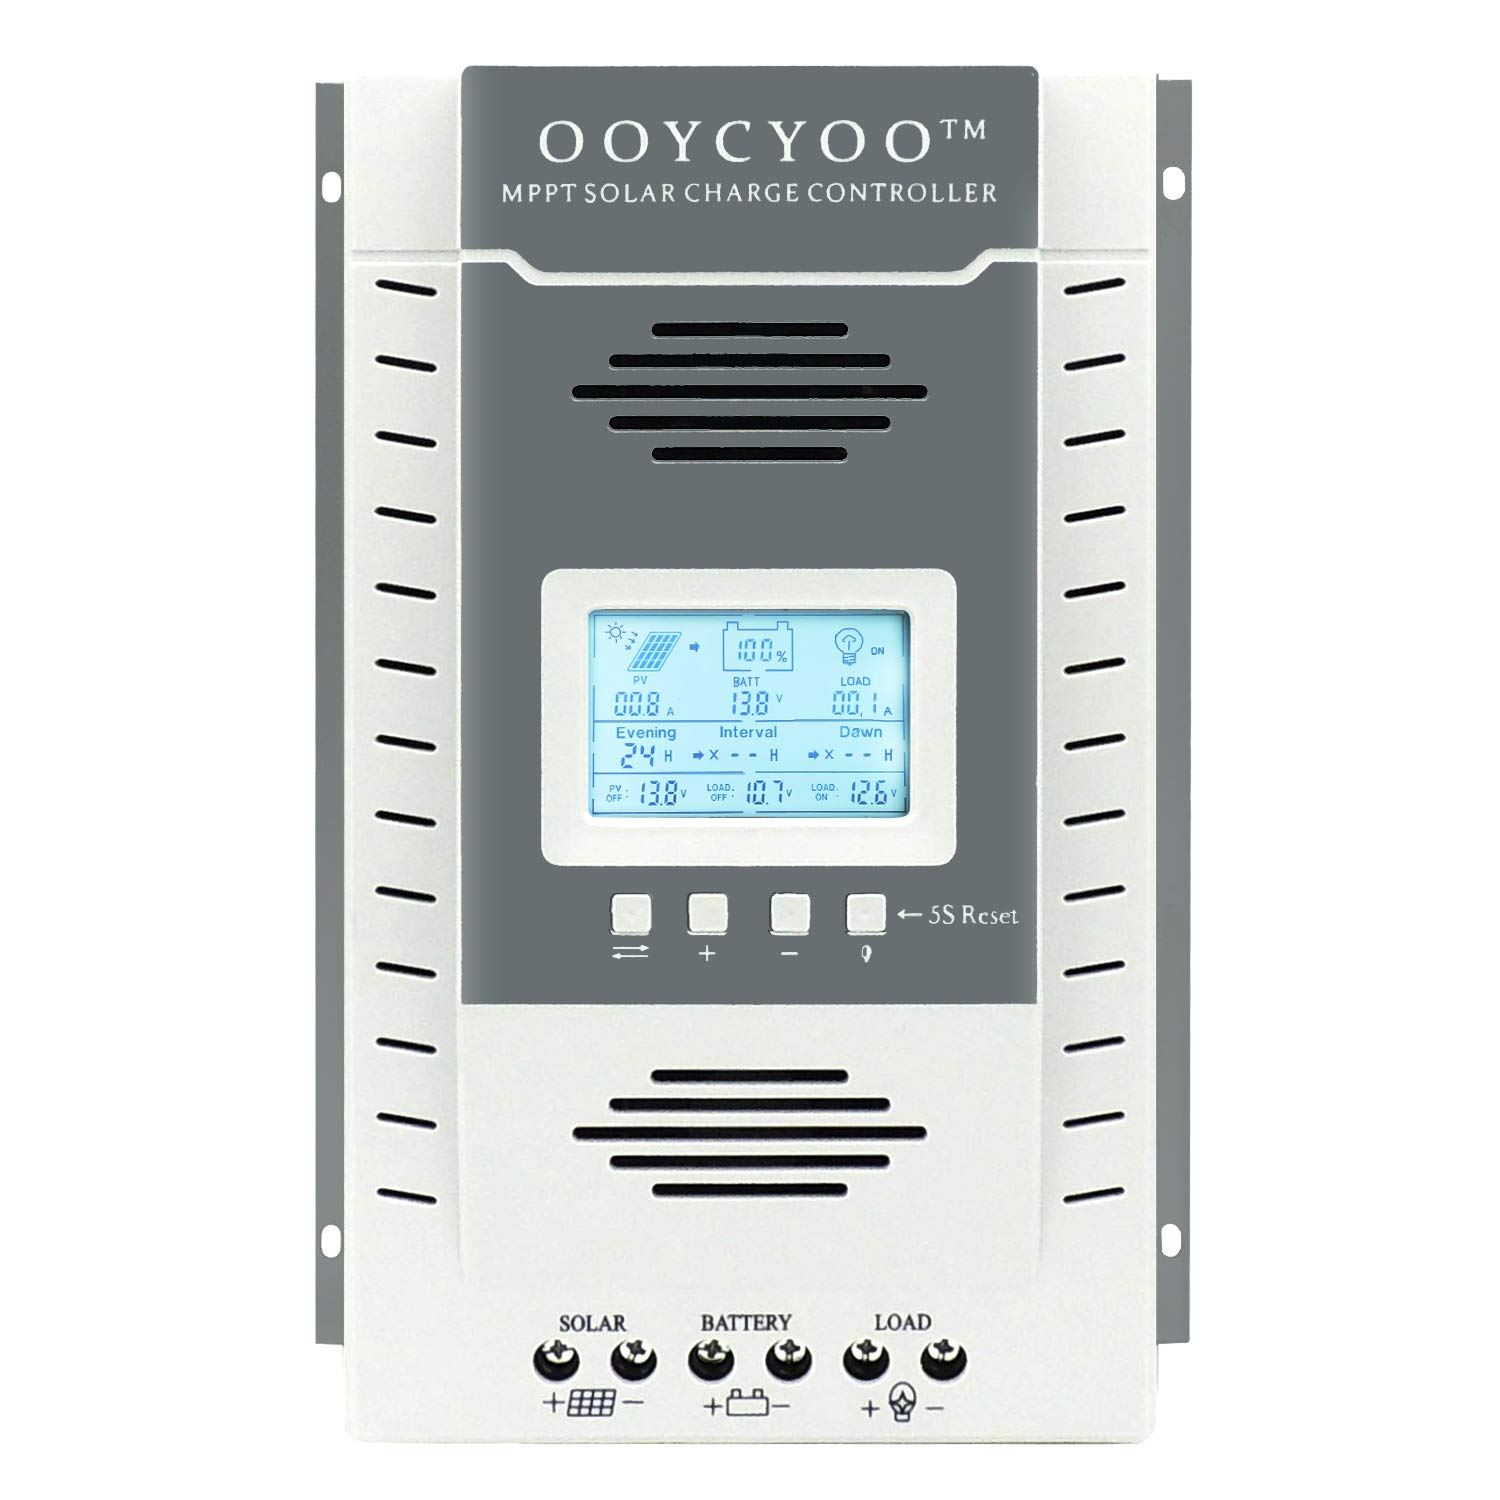 Temank 60A MPPT Solar Charge Controller 12V/24V Auto, 60 amp Solar Charge Regulator Max 96V, 780W/ 1560W Input, for Lead-Acid Battery Load Timer Setting